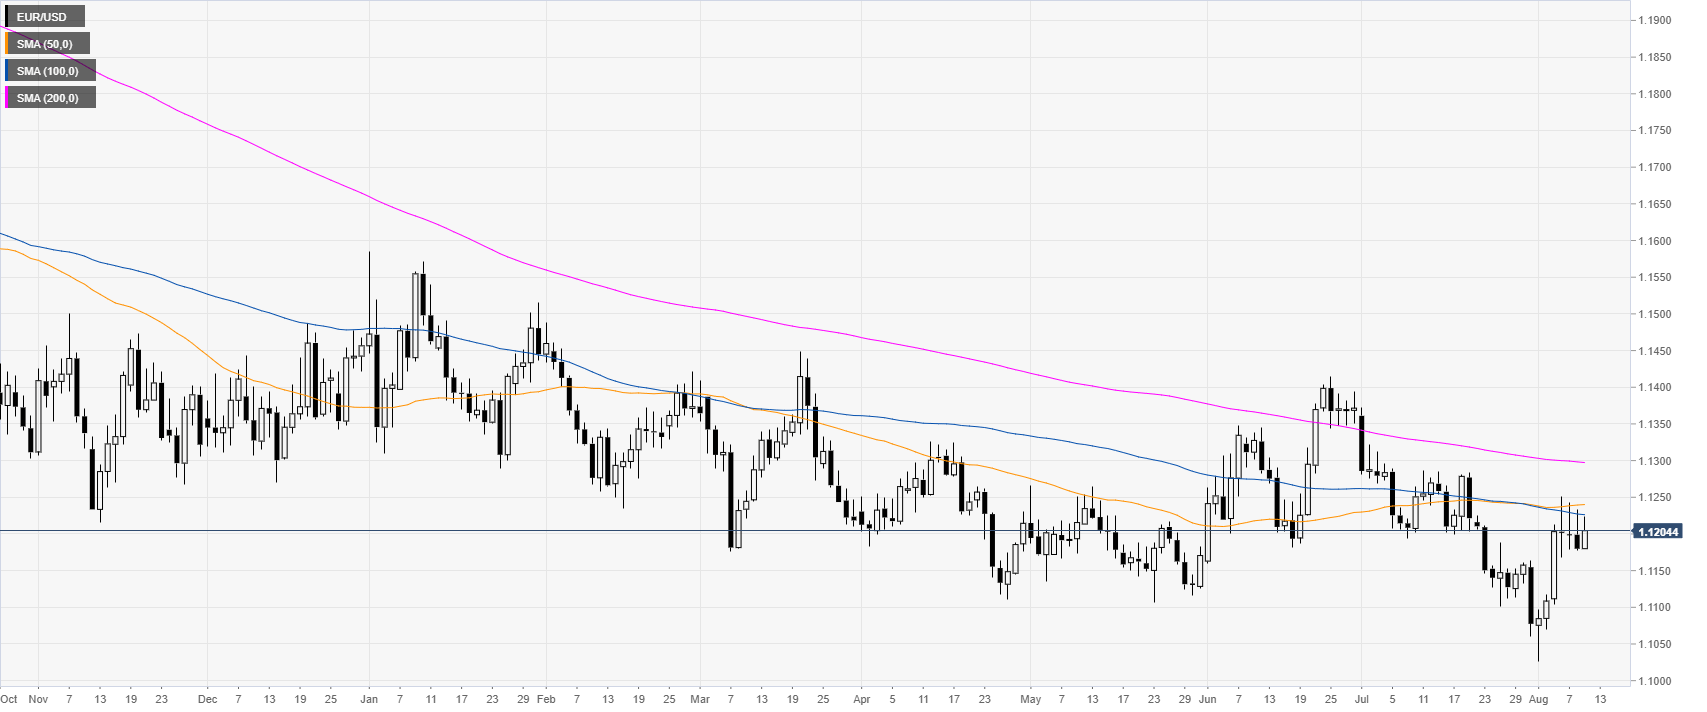 EUR/USD technical analysis: Fiber eases from daily highs, trading